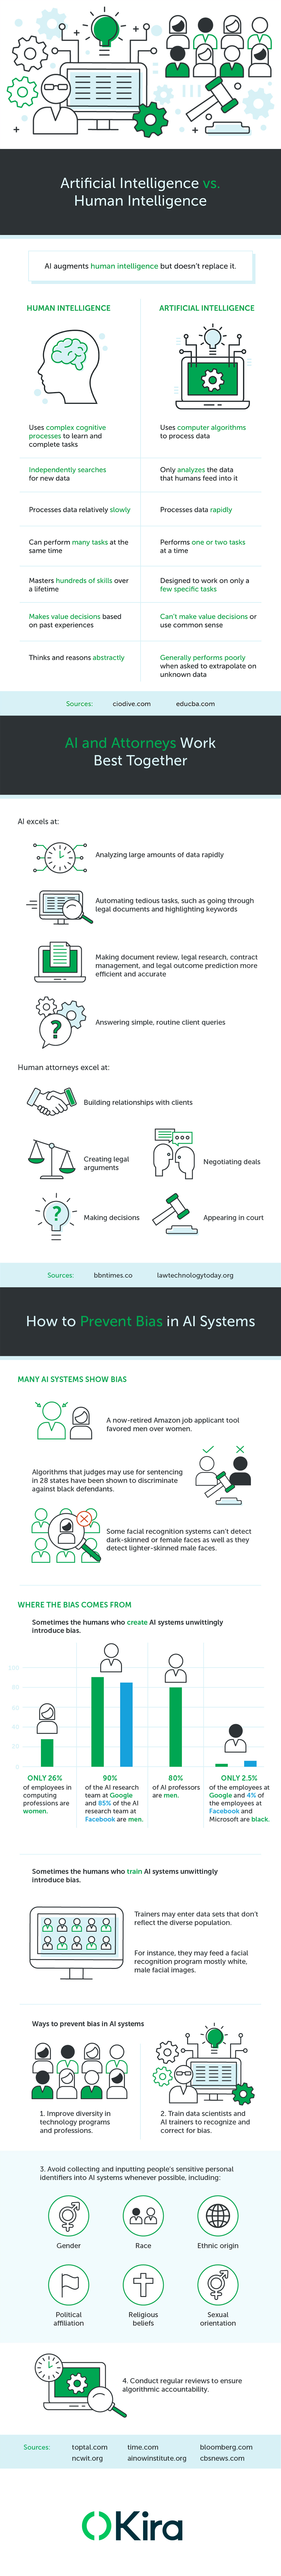 can-ai-be-problematic-in-th-legal-sector-embed (1).jpg